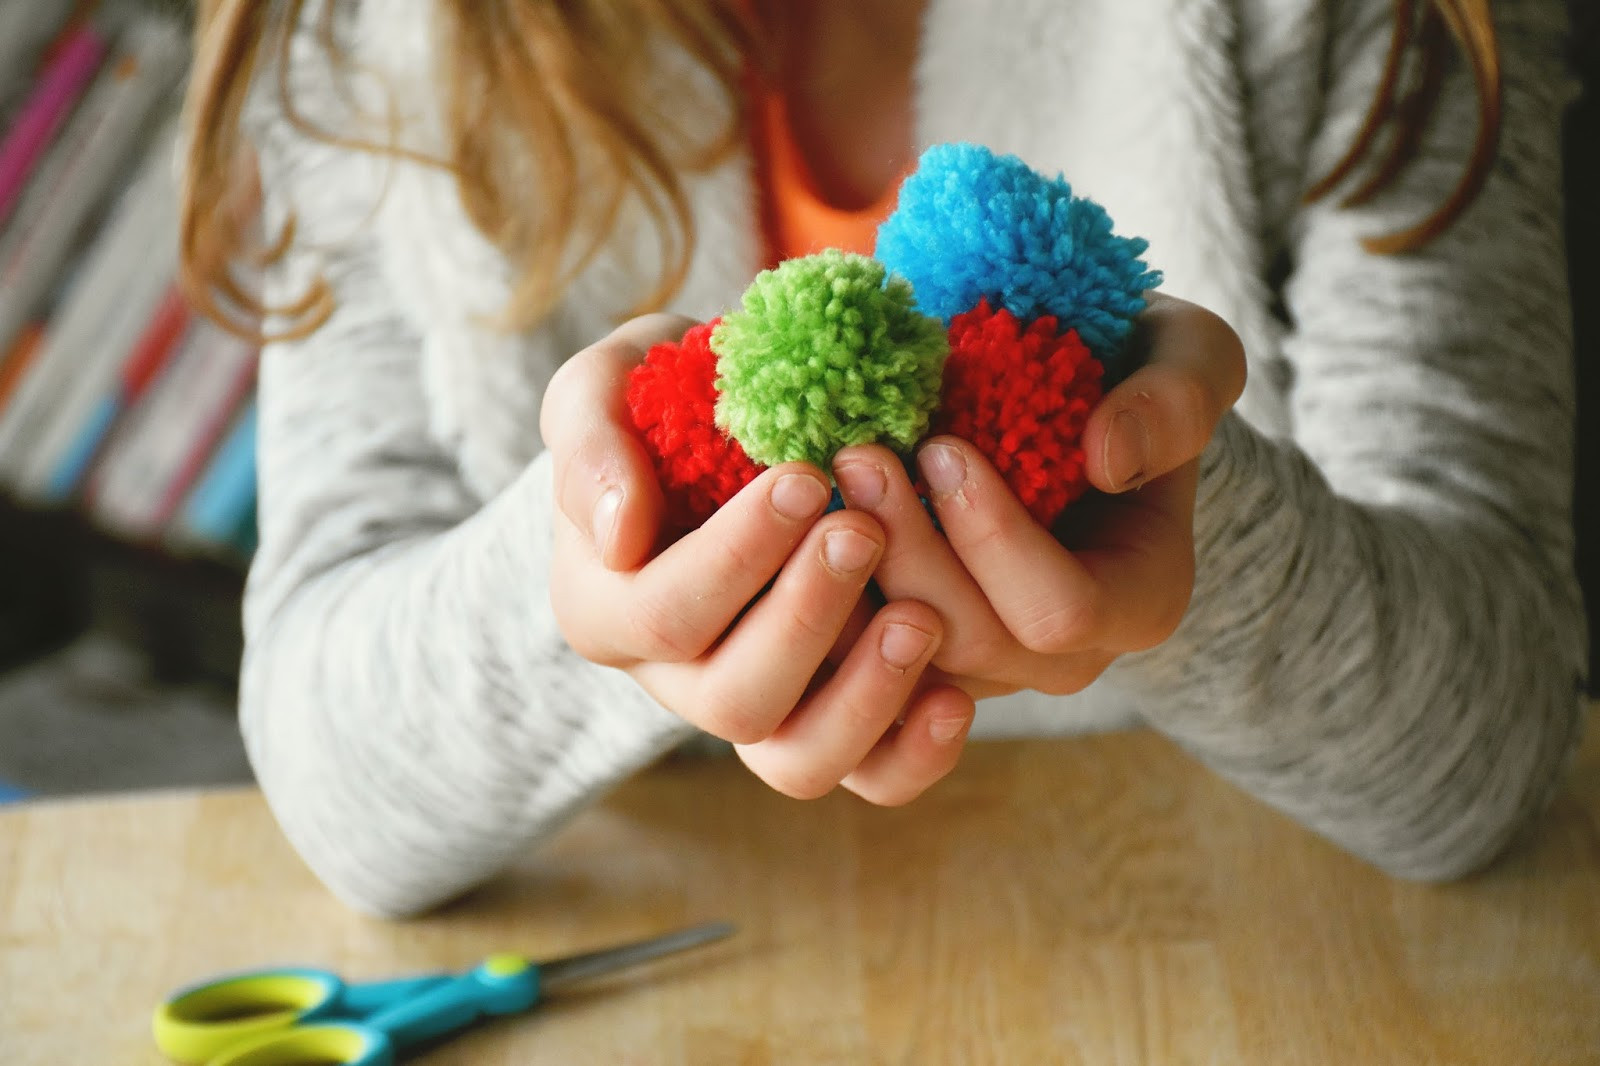 Pom Pom Maker Elegant Woman In Real Life the Art Of the Everyday How to Make A Of Beautiful 46 Images Pom Pom Maker